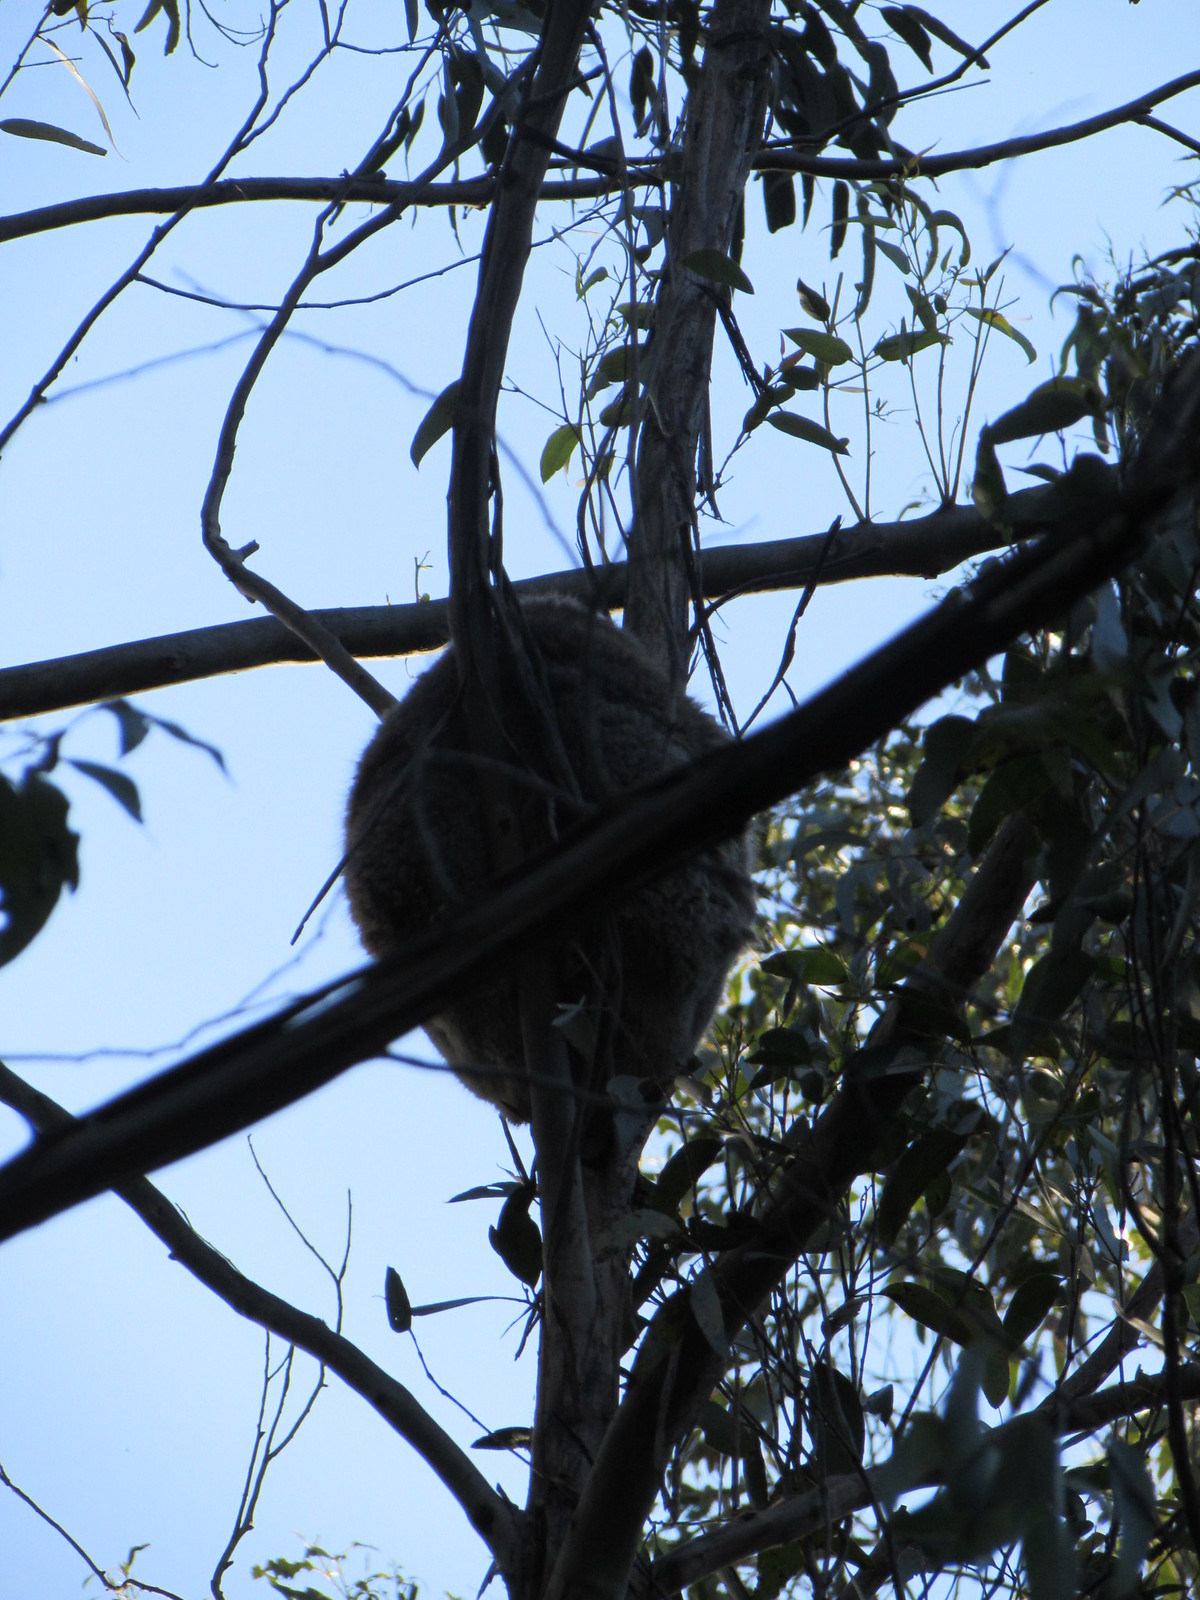 Koala #3, also fast asleep